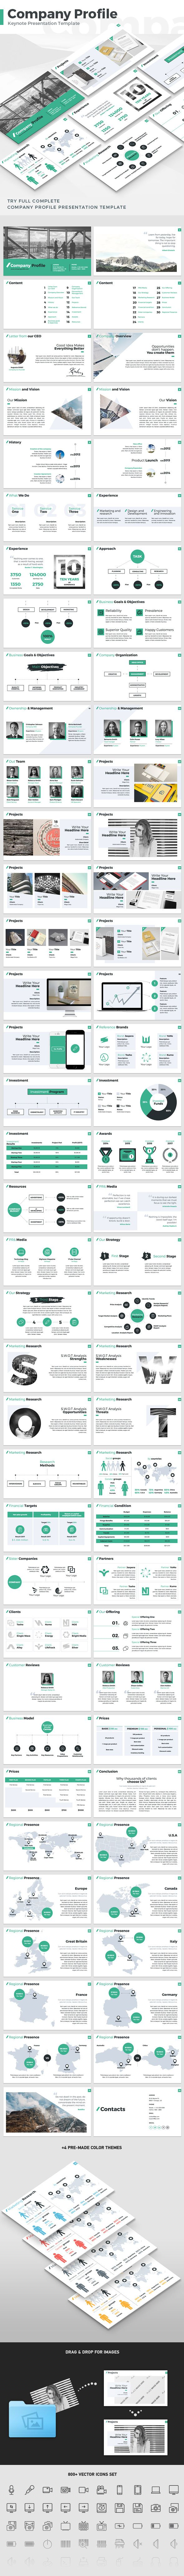 Company Profile - Keynote Presentation Template